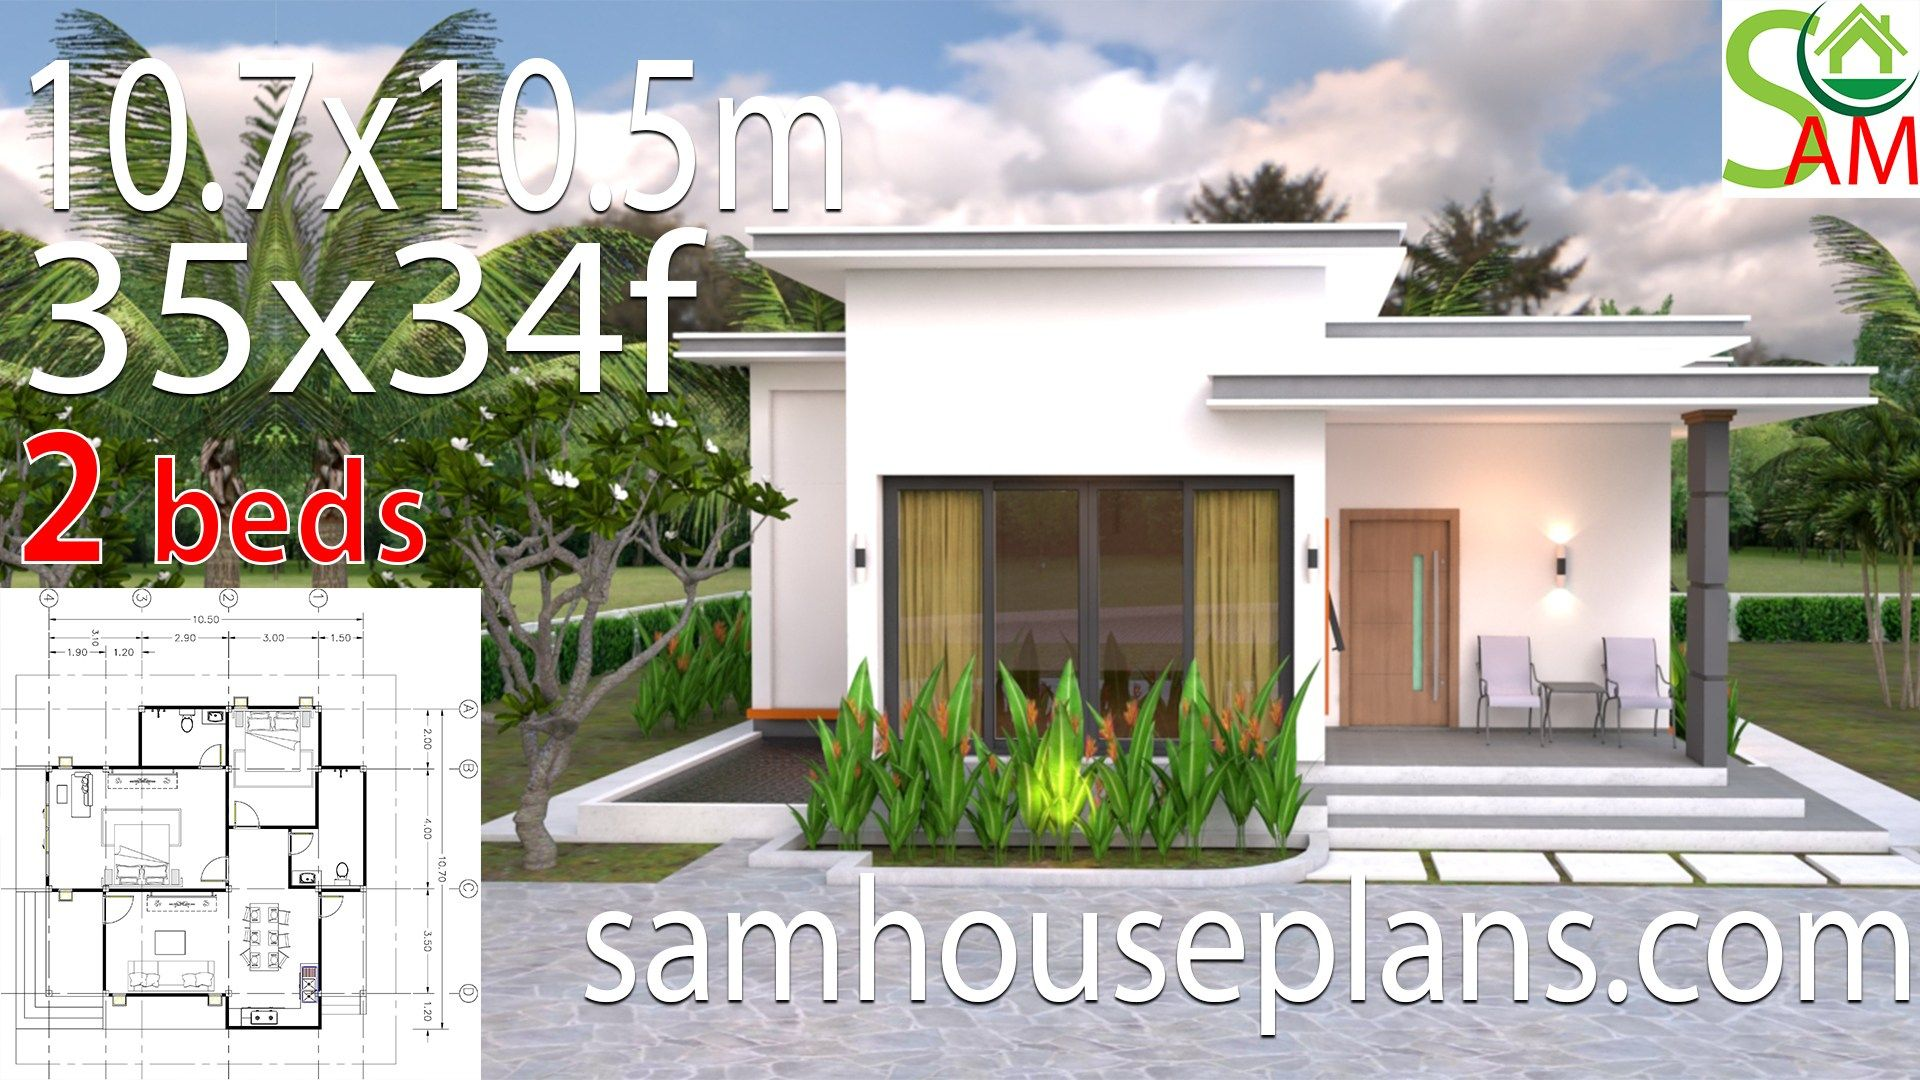 House Plans 10.7x10.5 with 2 Bedrooms Flat roof in 2020